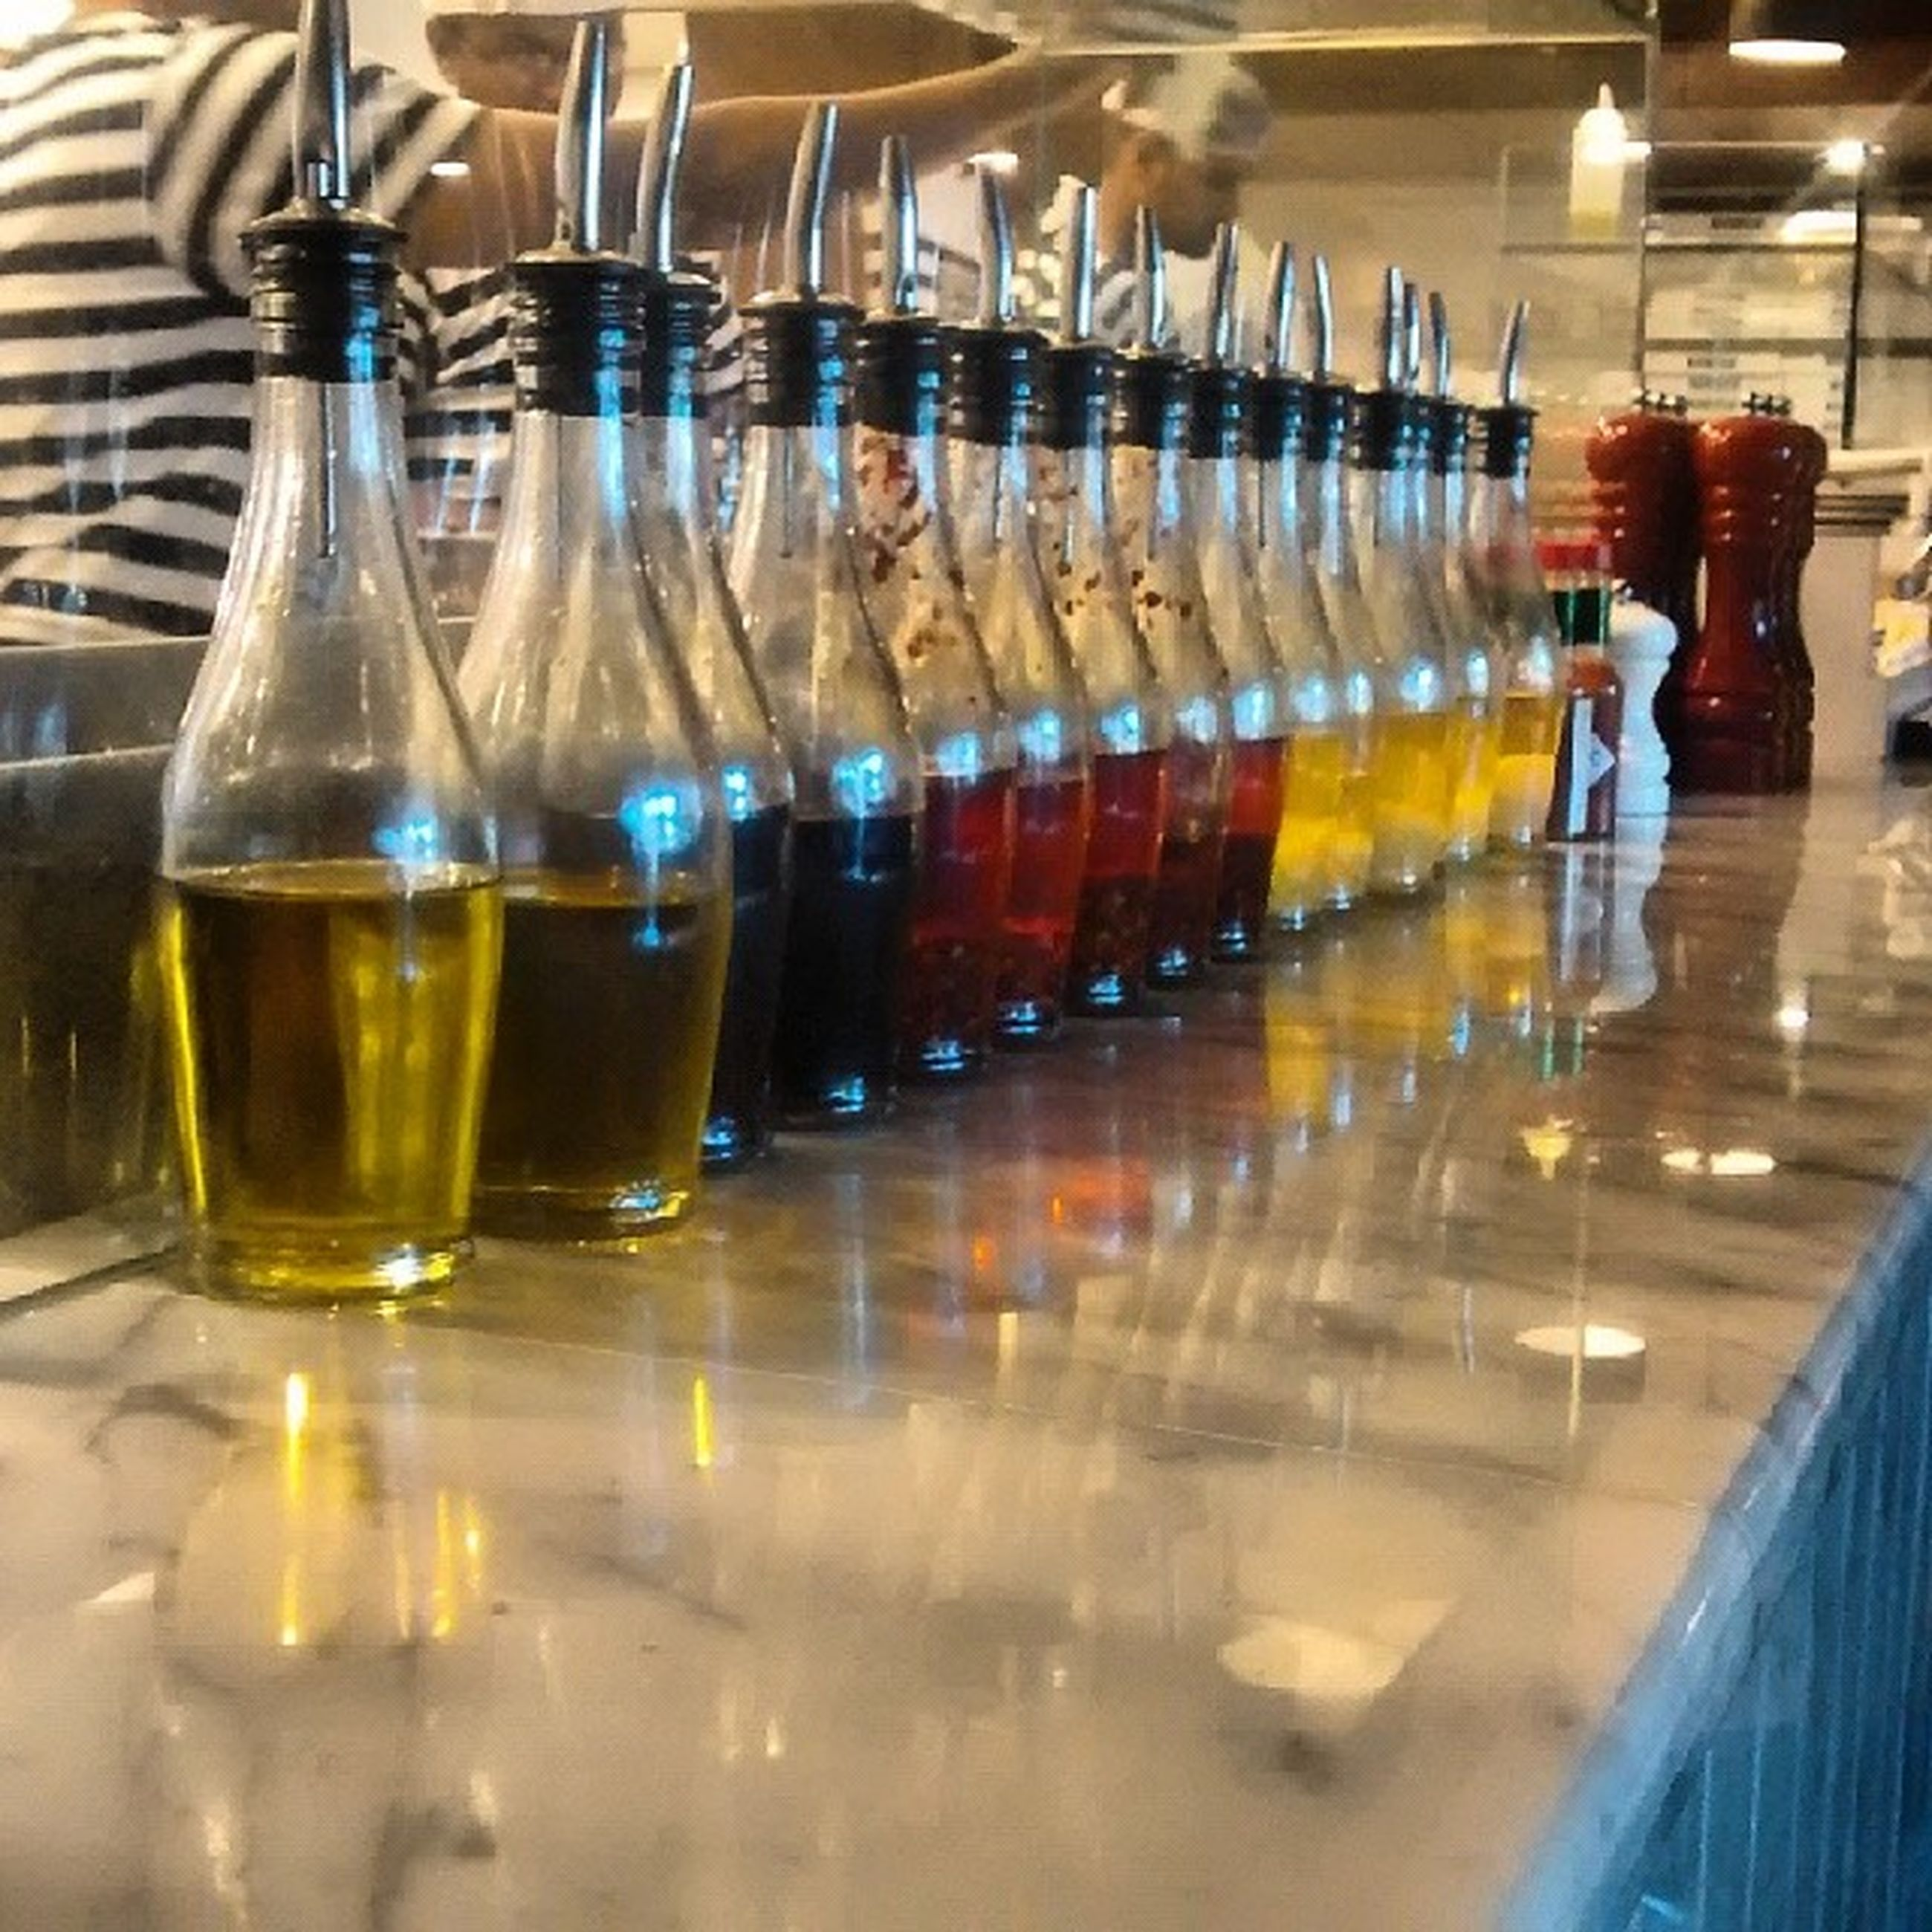 indoors, drinking glass, drink, table, food and drink, refreshment, glass - material, still life, alcohol, restaurant, wineglass, transparent, bottle, glass, reflection, empty, wine, in a row, close-up, arrangement